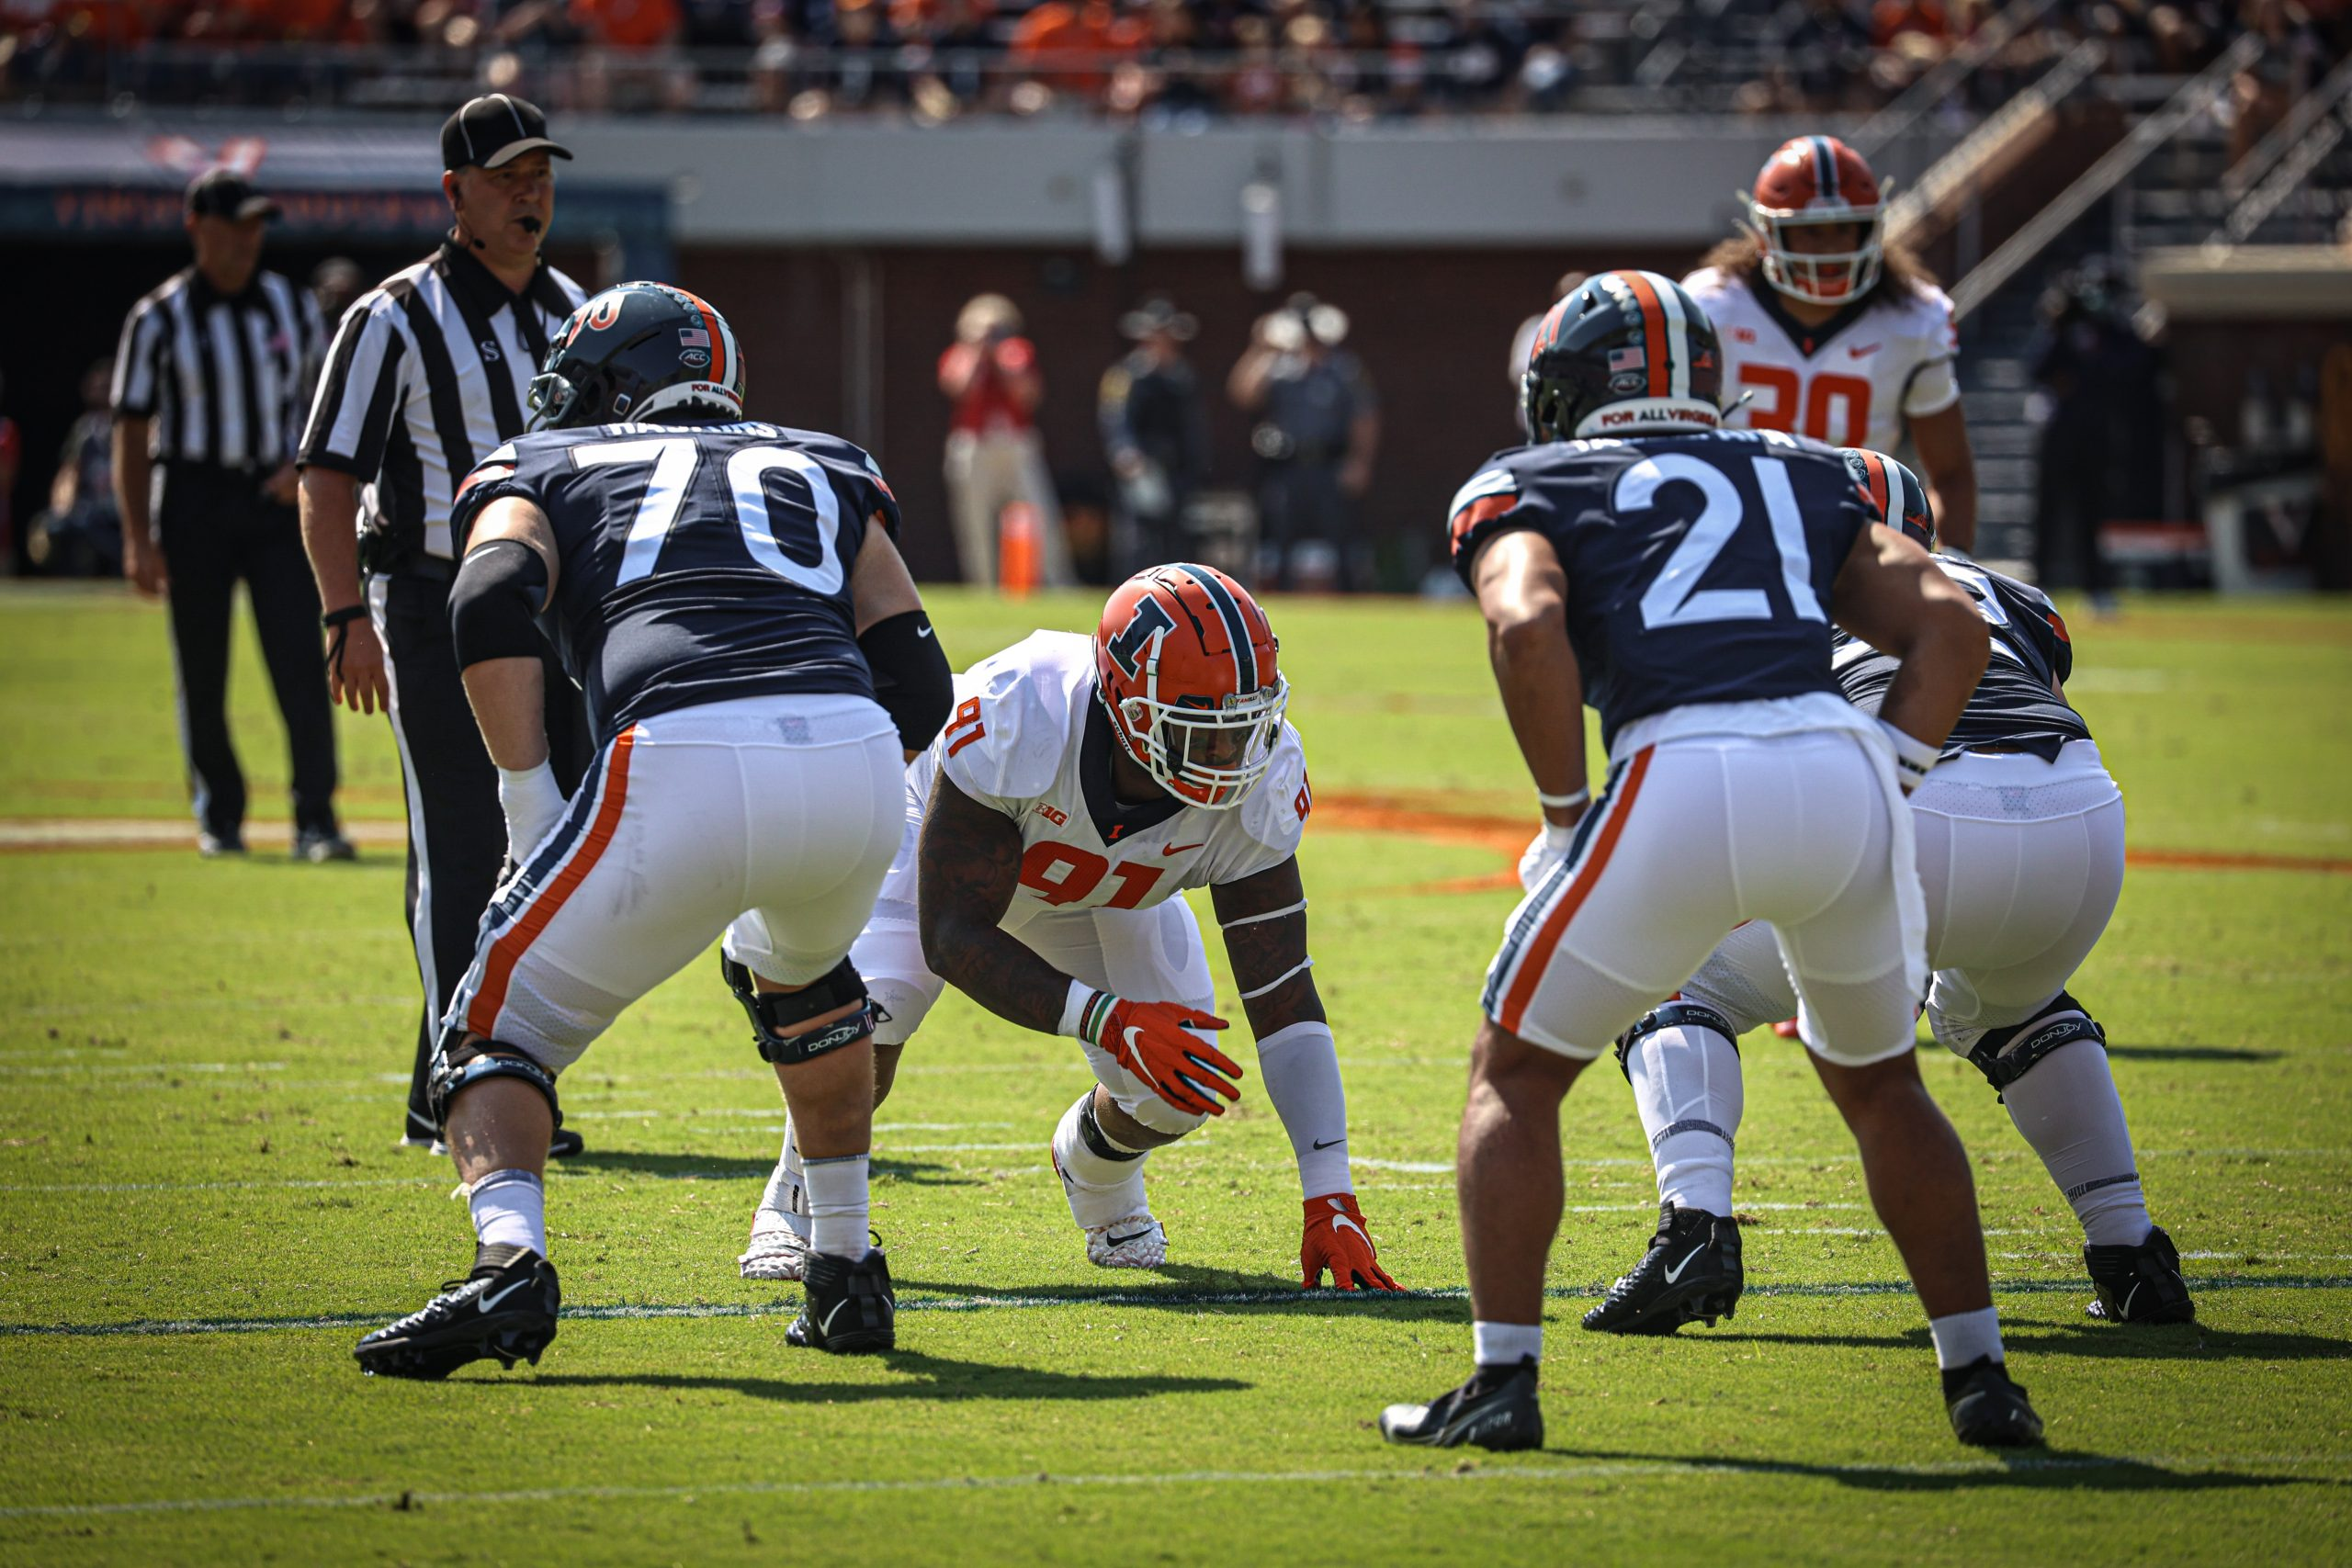 The Trench Report: Virginia